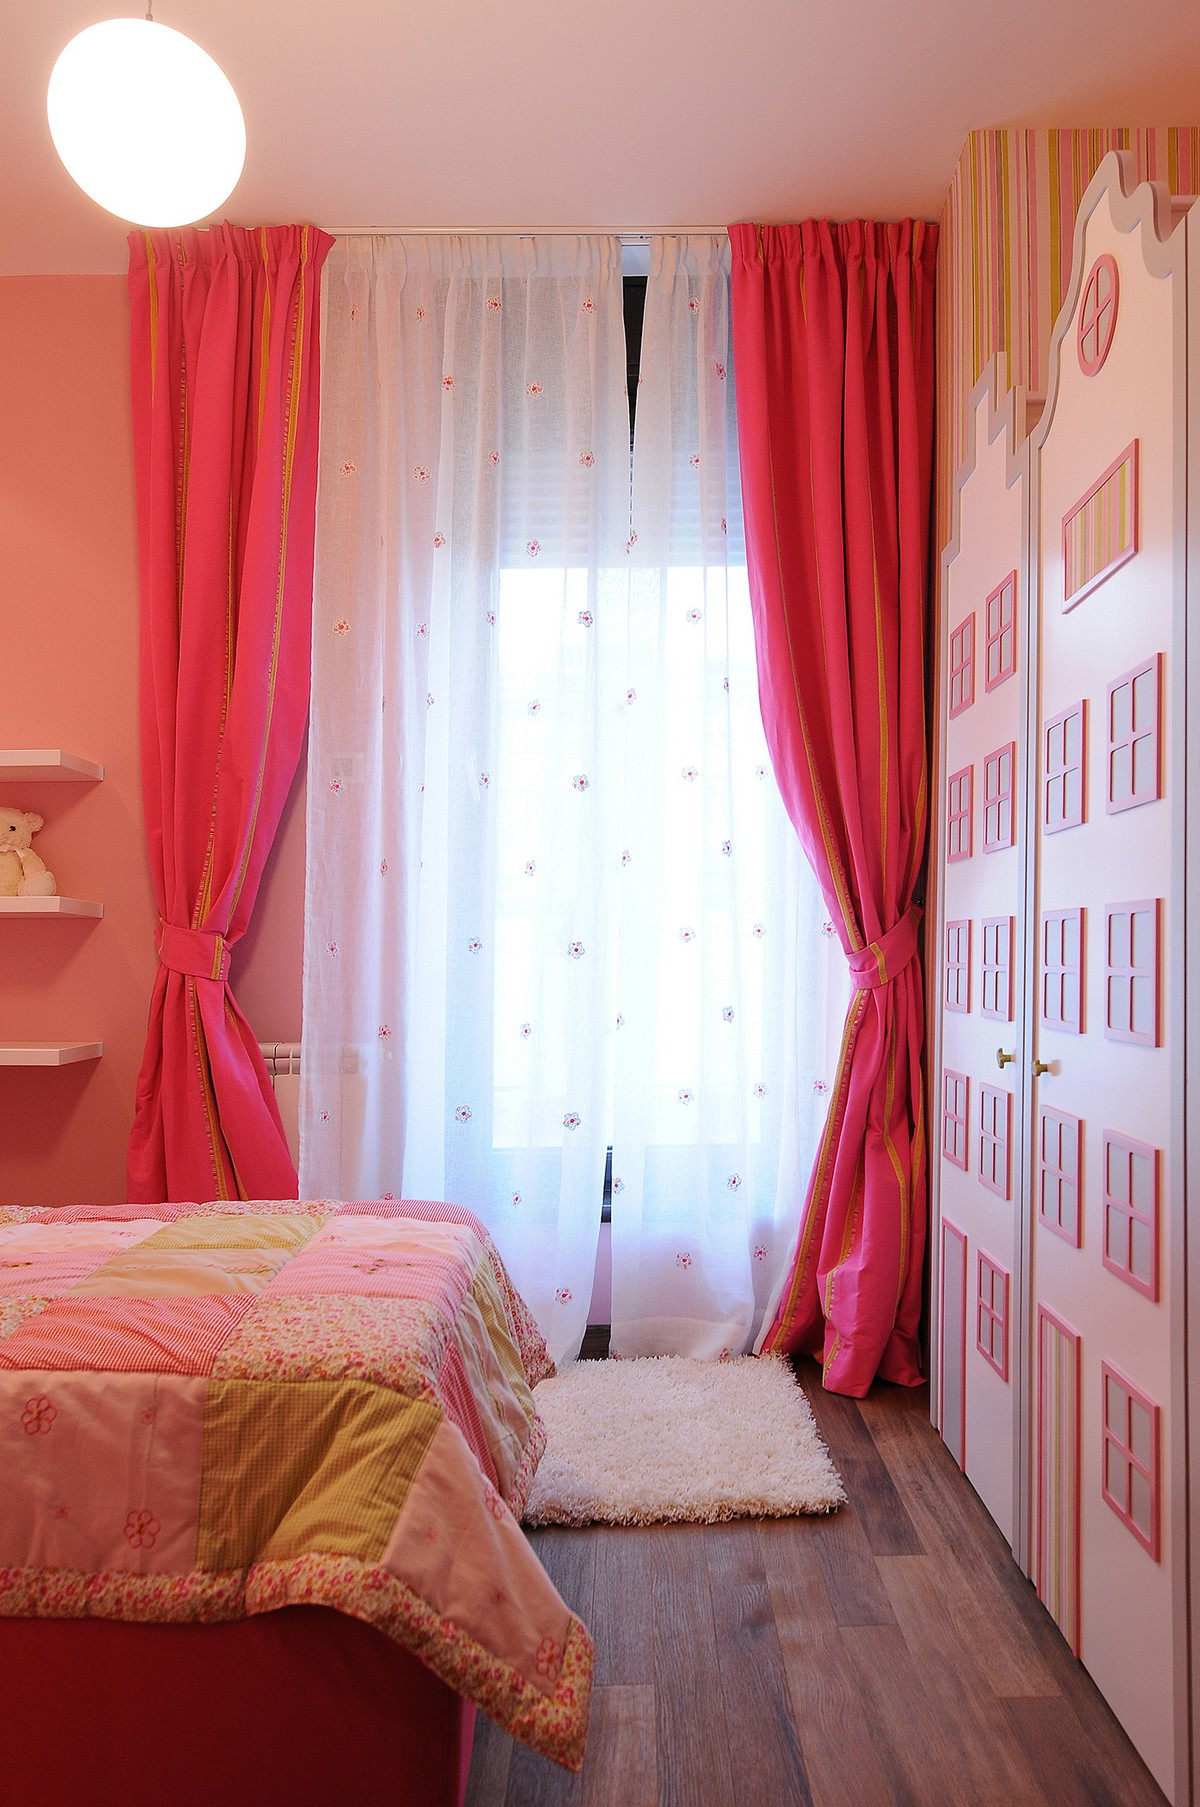 Luxurious Penthouse in Modern and Comfort Design: Barbie House Like Cabinet And Bright Window Decor Pink Curtain